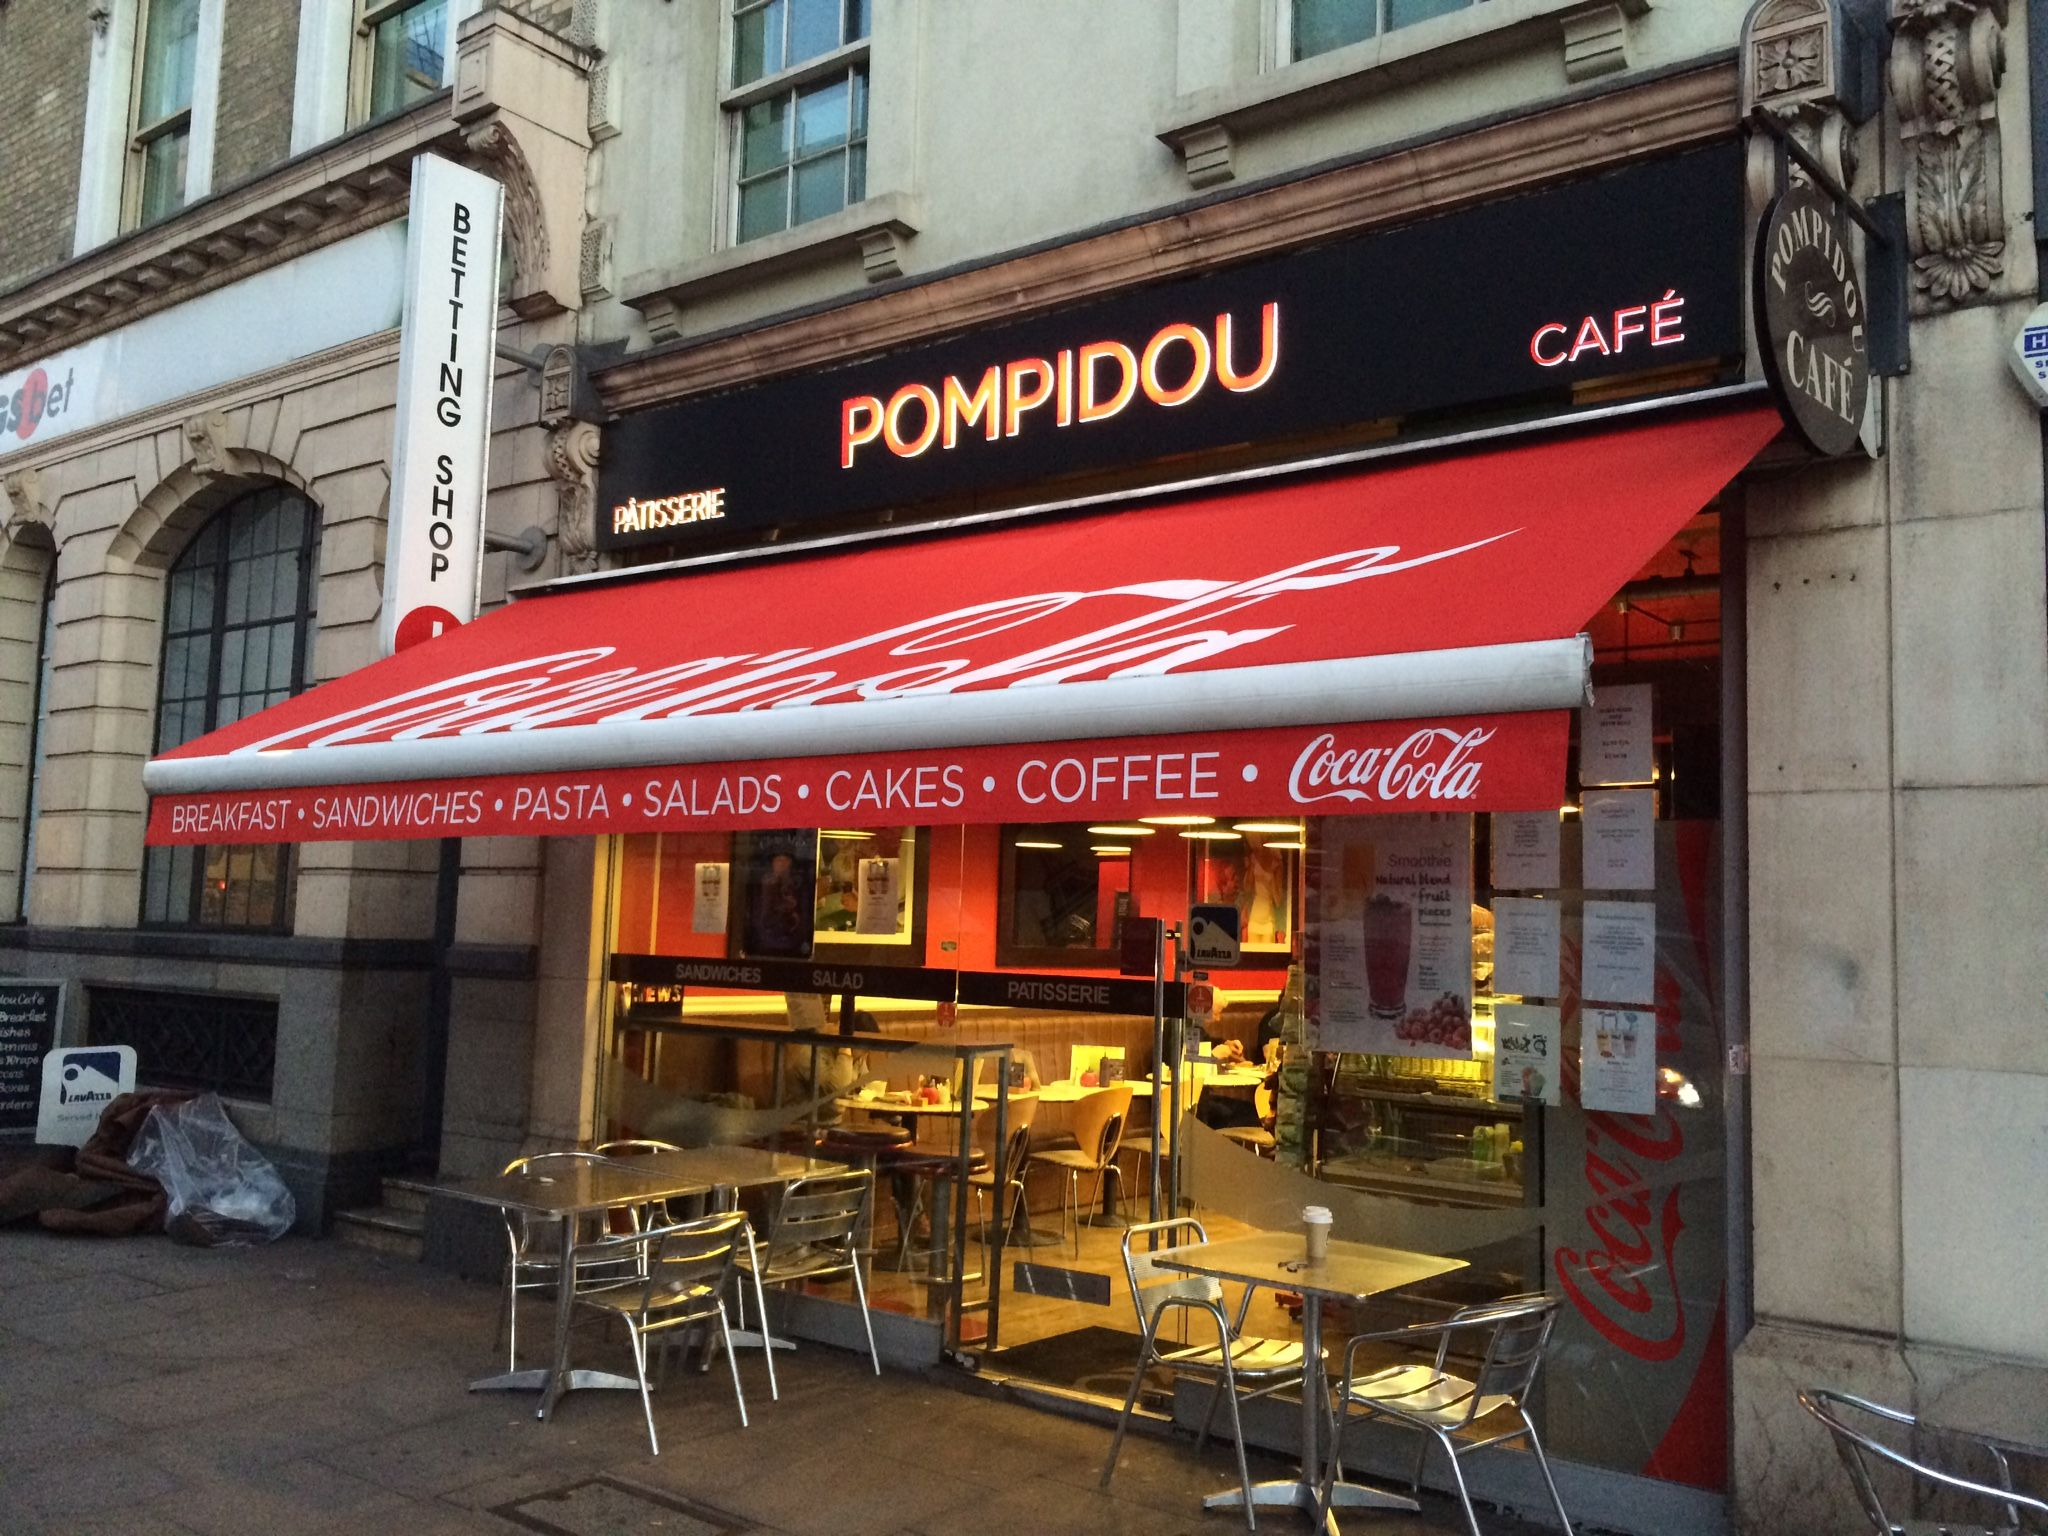 Pin On Shop Blinds And Commercial Awnings